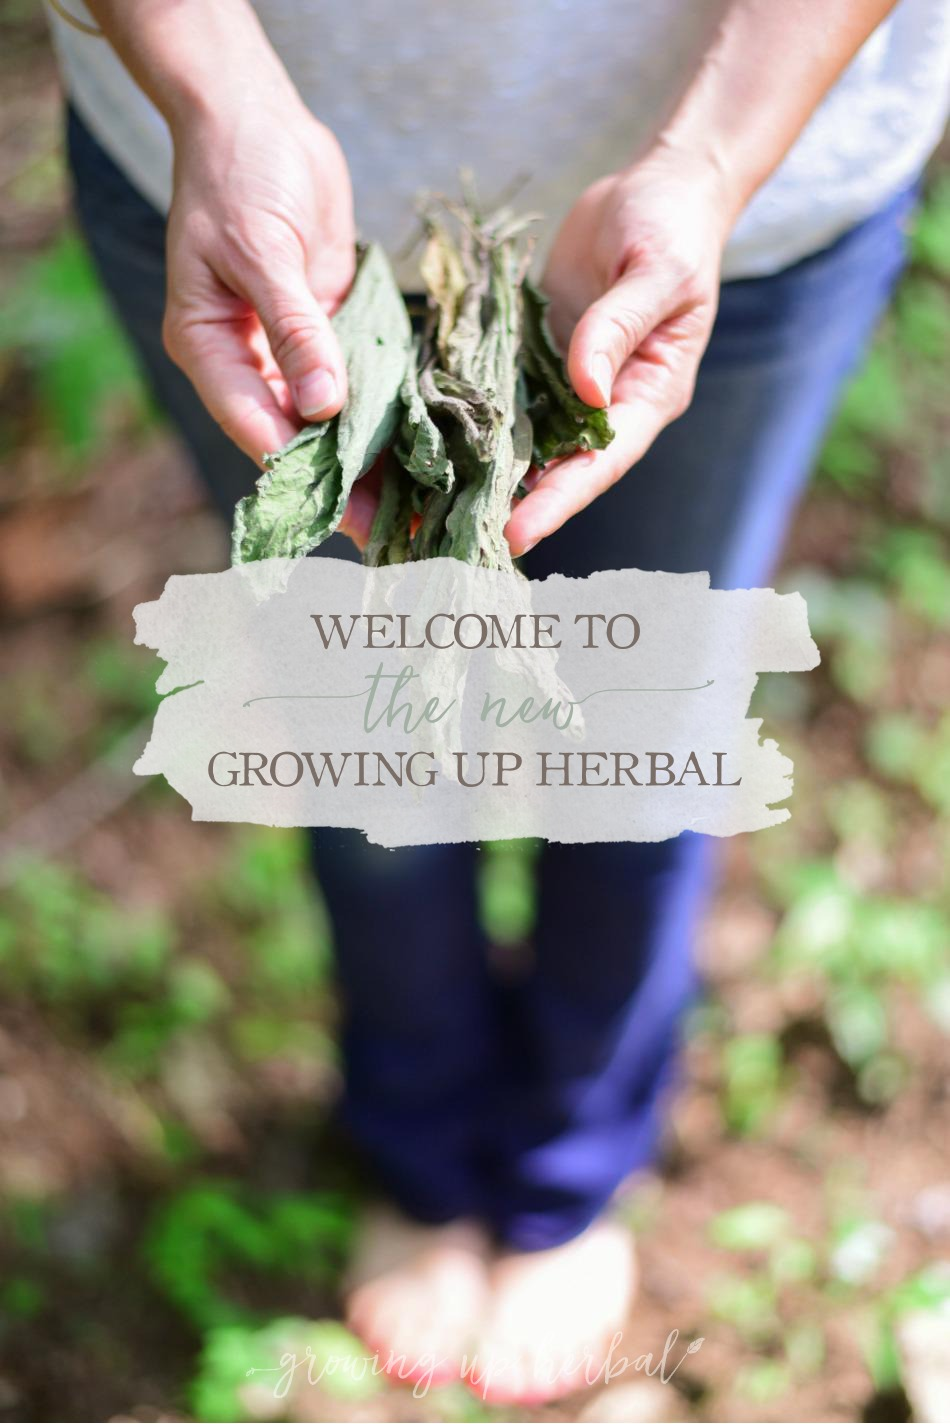 Welcome To The NEW Growing Up Herbal! (Win Some Natural Mama Prizes!)   Growing Up Herbal   Join me as I celebrate the launch of my new website design. I'm hosting some fun contests and giving away some amazing natural mama prizes all week! Come check it out!